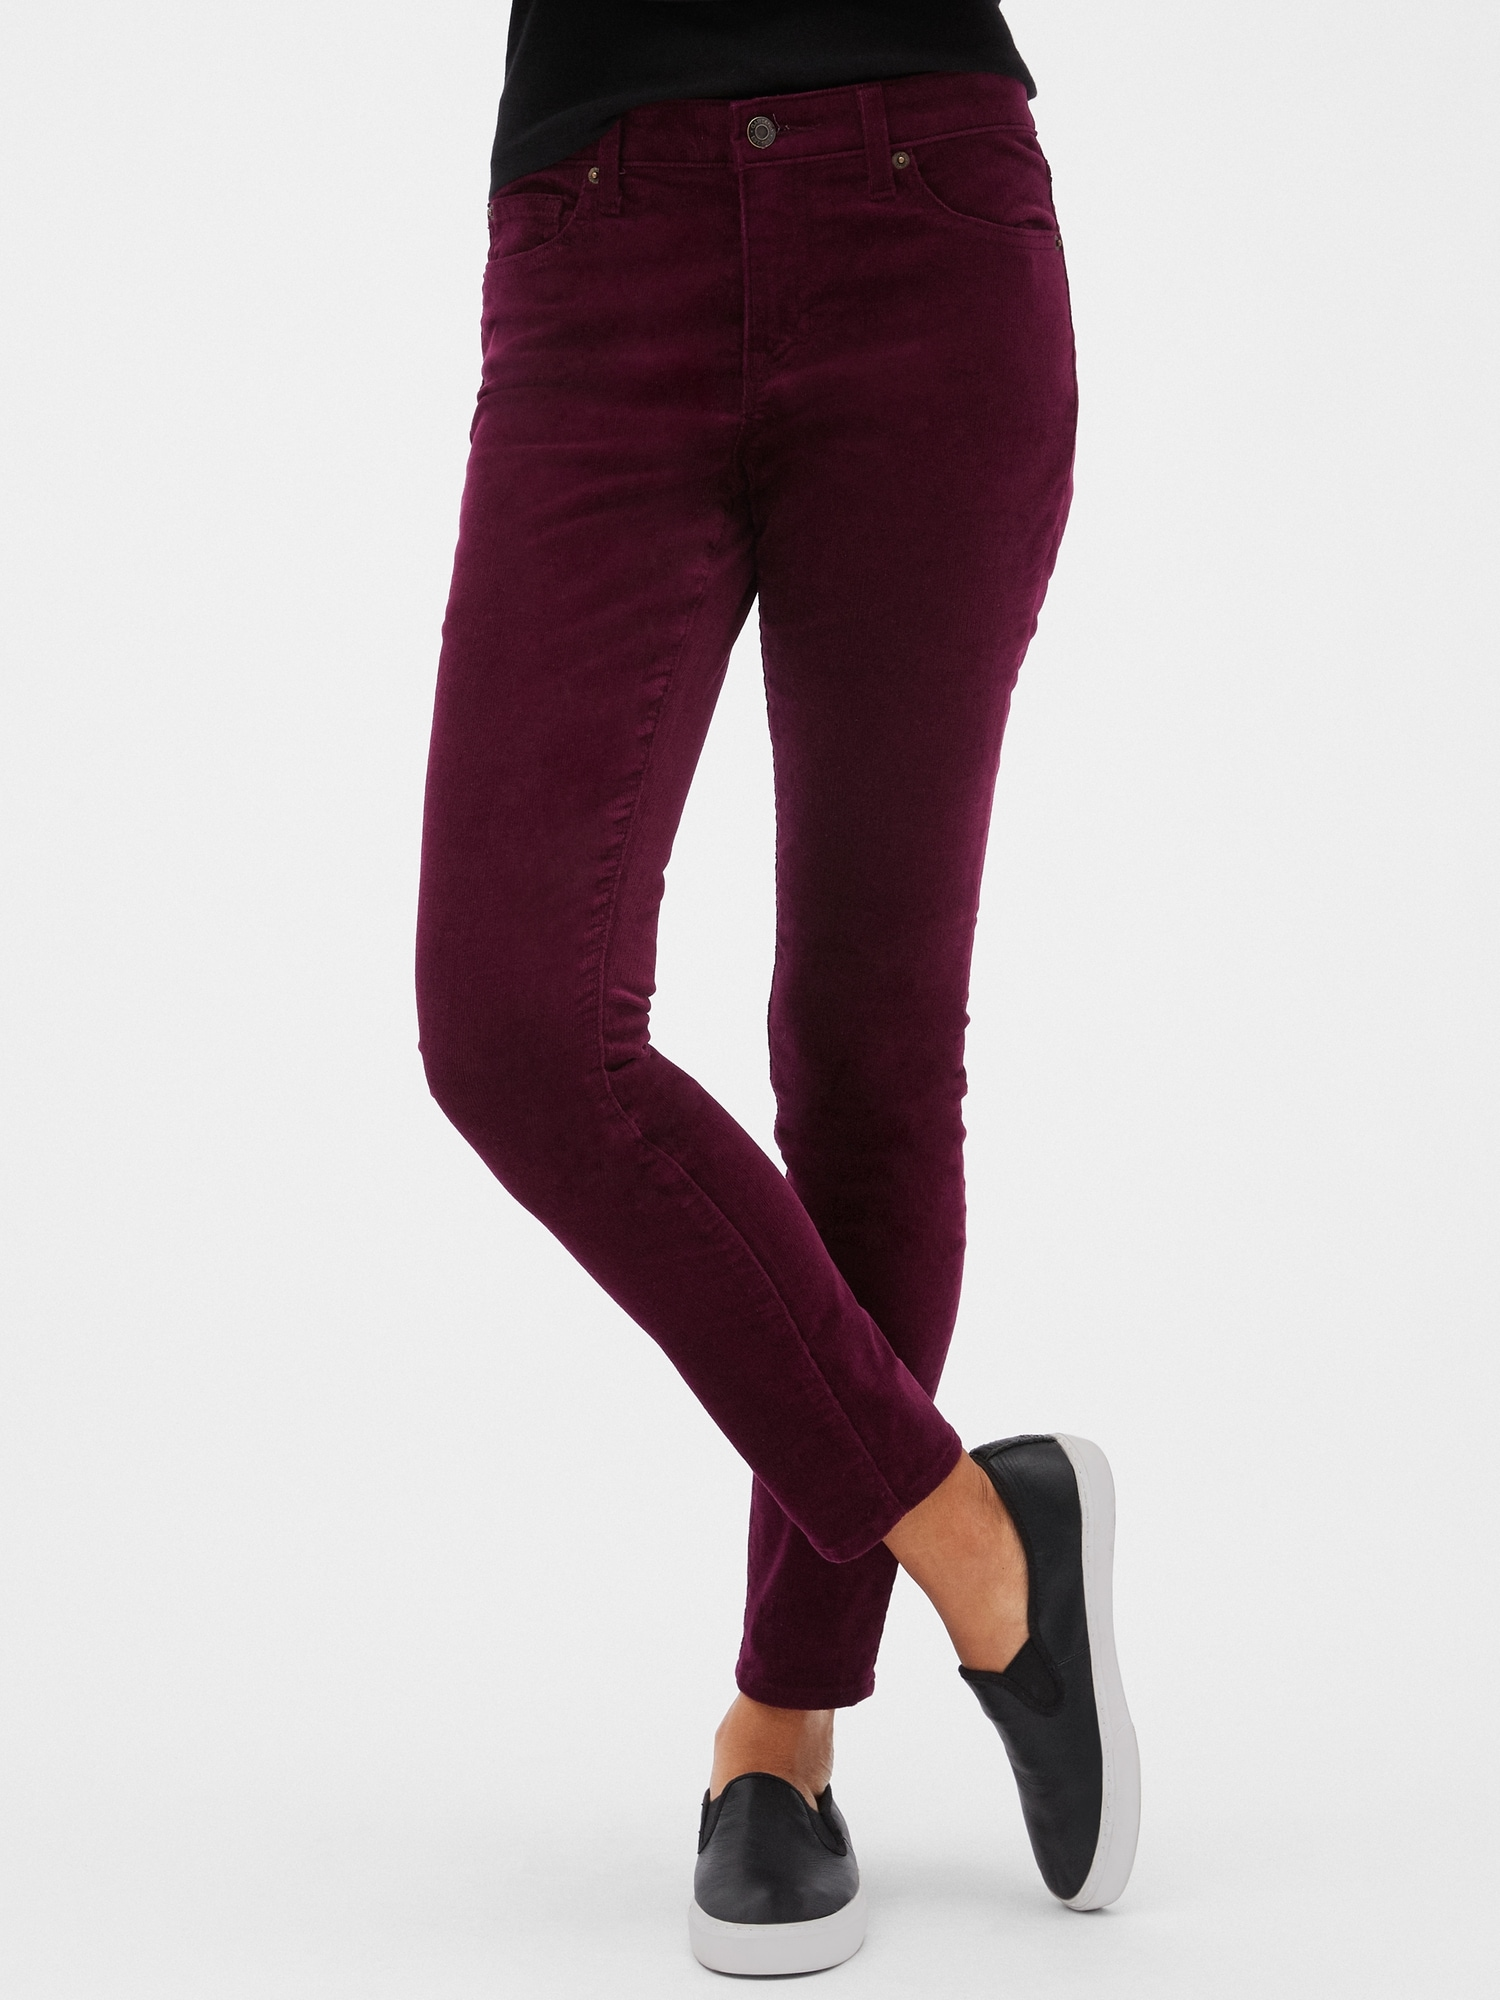 Mid Rise Legging Cords by Gap